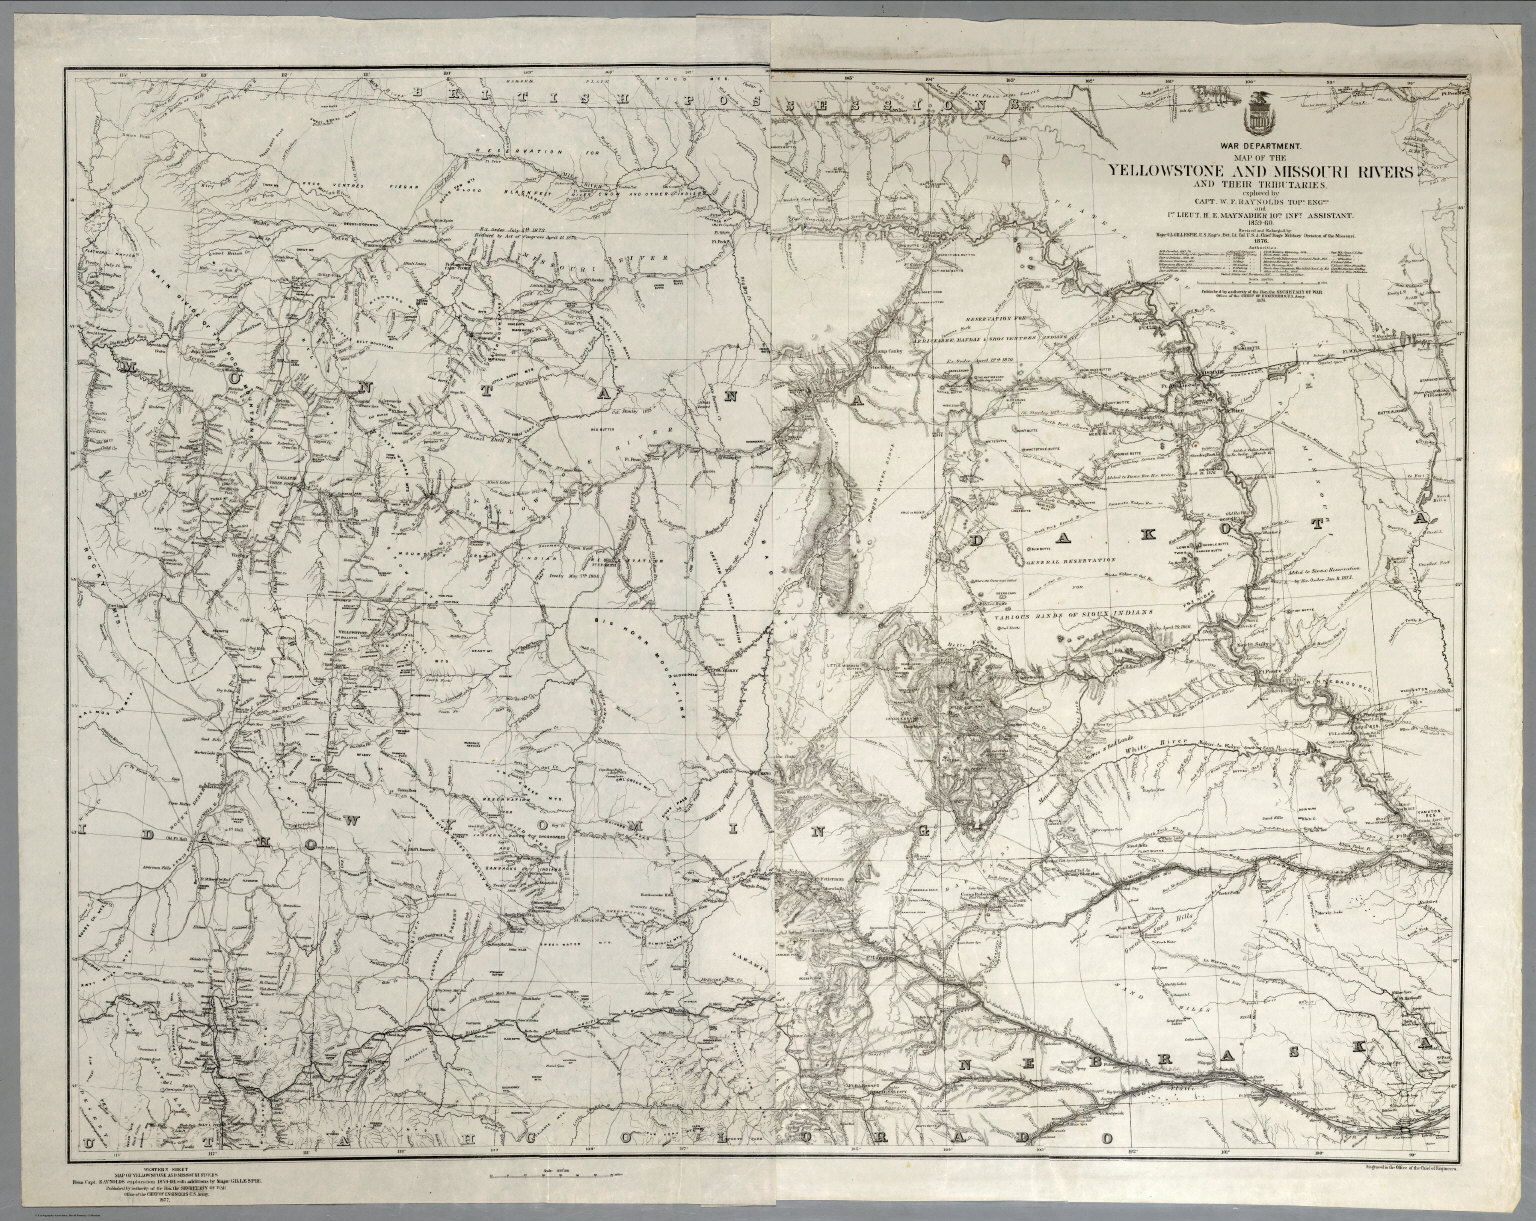 Map Of Missouri Rivers on platte river, map of lake sakakawea, map of potomac river, yellowstone river, ohio river, map of mississippi, map of great lakes, map of great basin, columbia river, map of st. lawrence river, map of rocky mountains, map of ohio river, map of mount rushmore, map of st. croix river, map of arkansas river, arkansas river, lewis and clark expedition, map of great plains, hudson river, map of united states, tennessee river, great plains, map of snake river, map of indus river, mississippi river, gulf of mexico, rio grande, map of jordan river, potomac river, colorado river, map of rio grande river, snake river, map of hudson river, chesapeake bay, sierra nevada, rocky mountains, map of columbia river, red river, saint lawrence river, map of lewis and clark expedition,